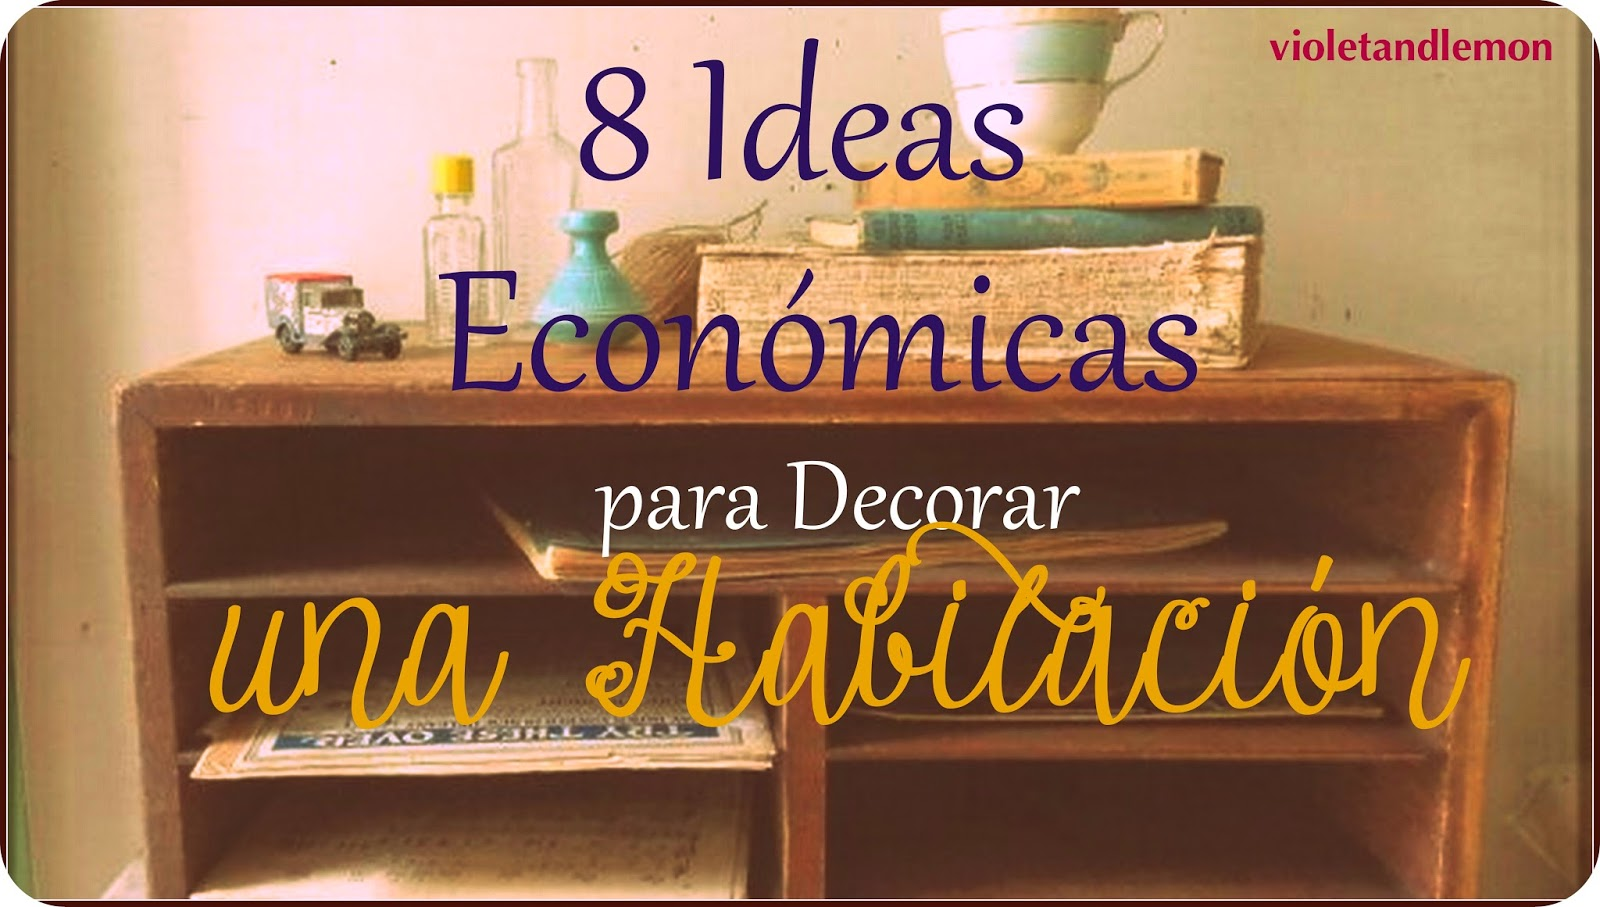 Violeta y lim n 8 ideas econ micas para decorar una for Ideas para decorar una recamara